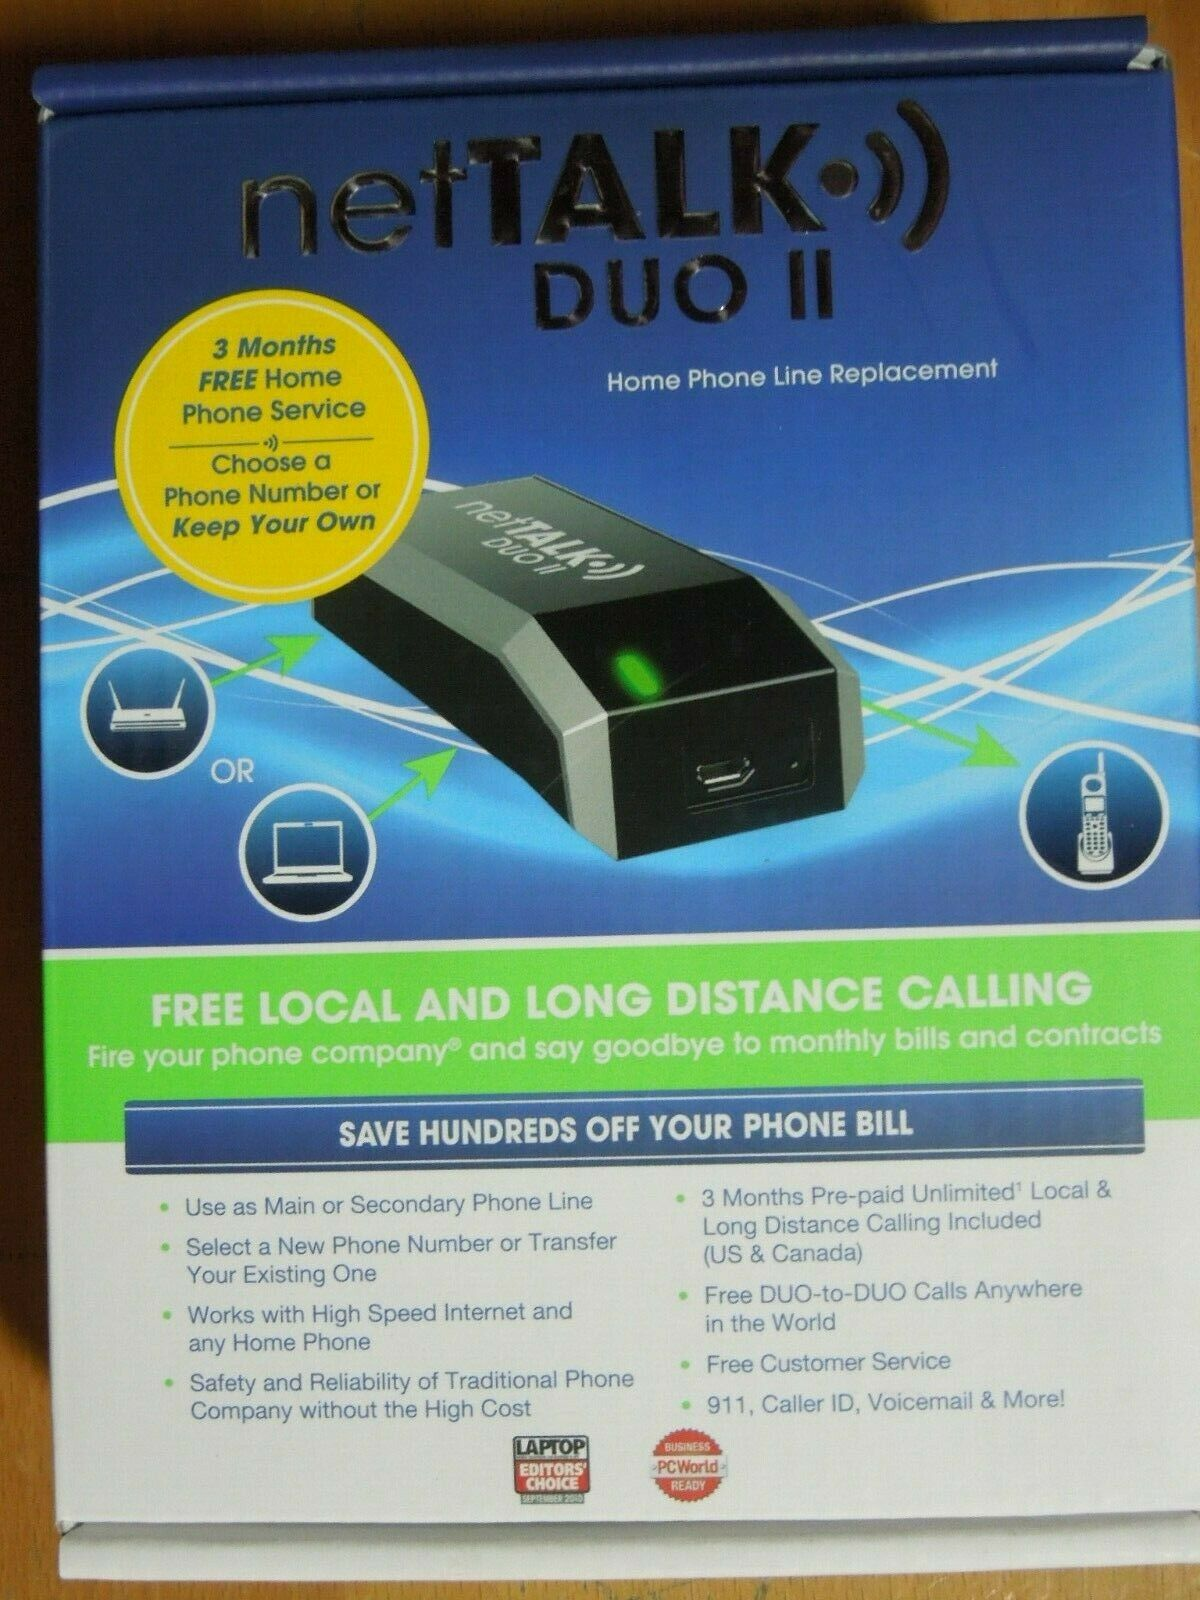 netTalk Duo II VoIP Device Home Phone Line Replacement BRAND